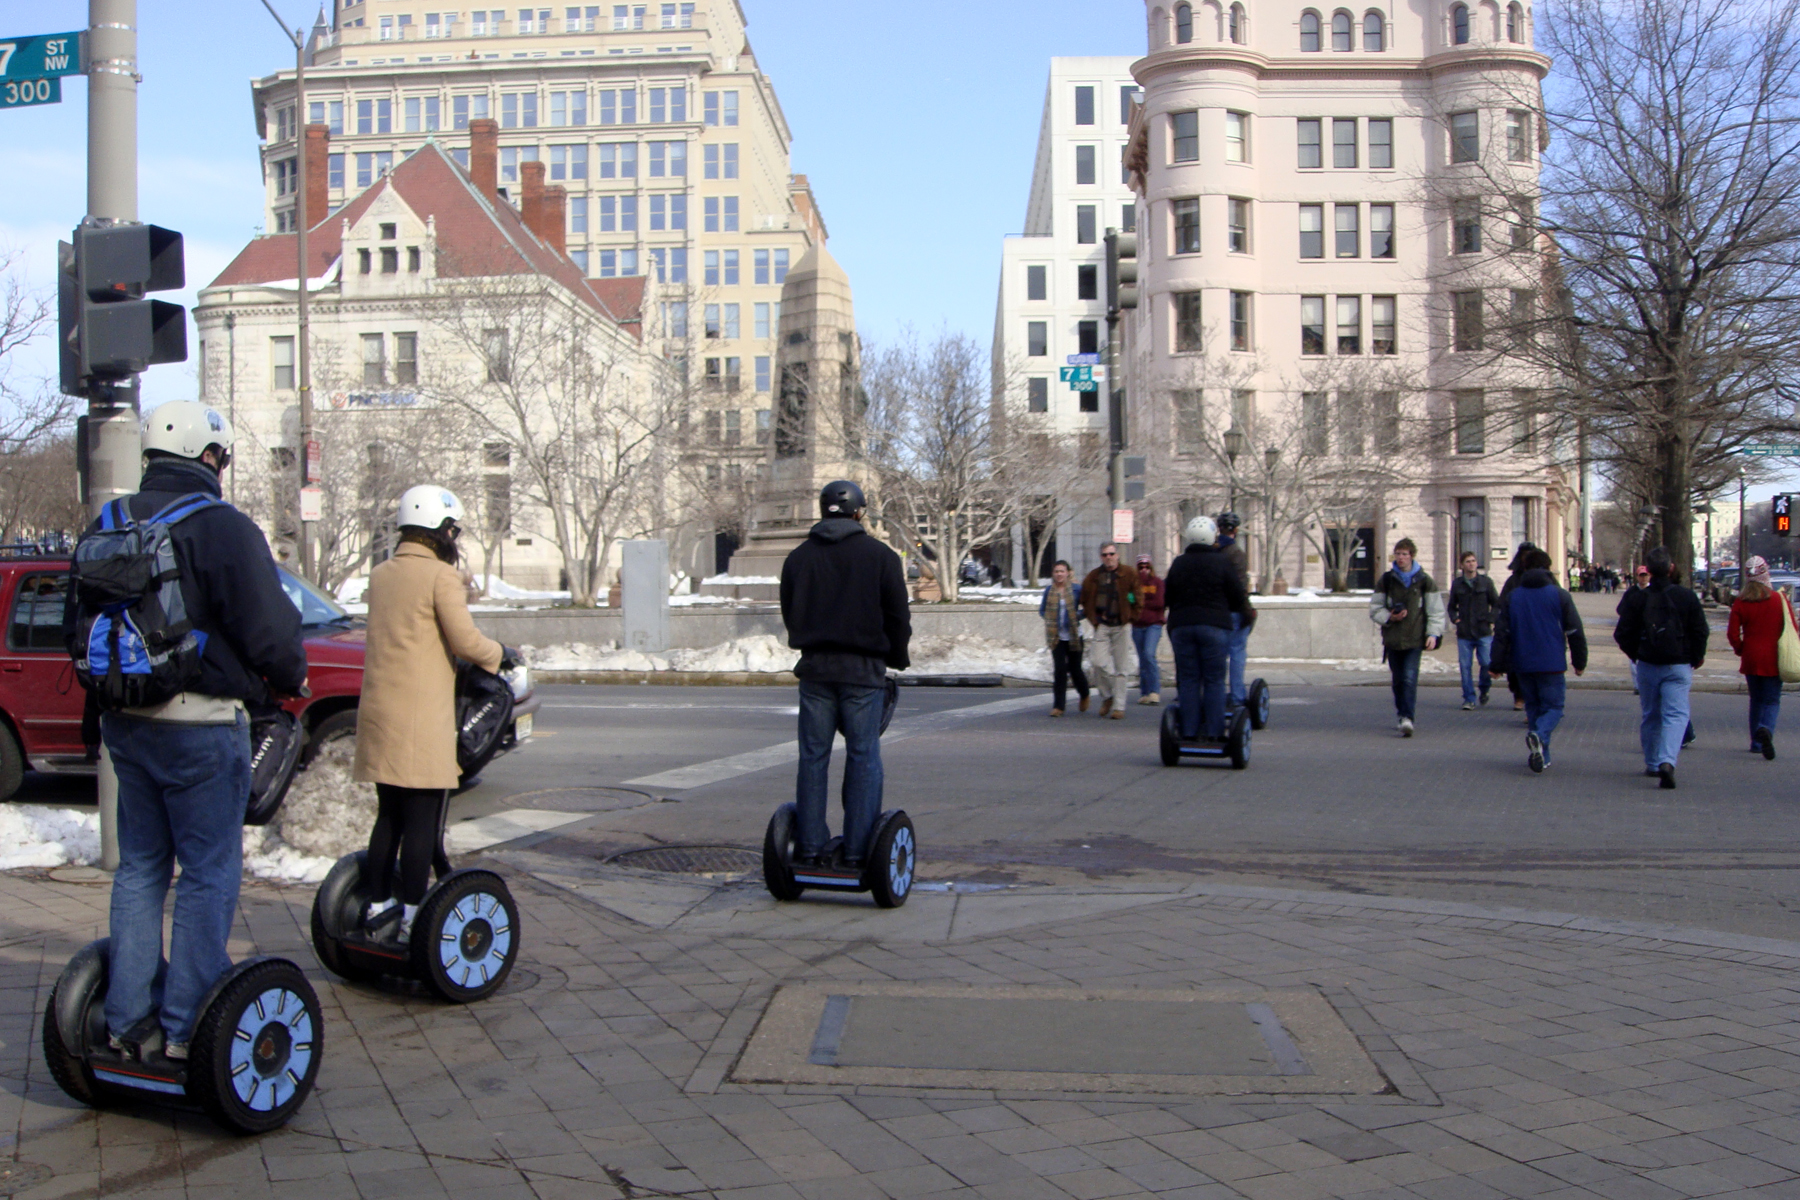 Can Tourists Go For A Sightseeing Tour - Washington DC